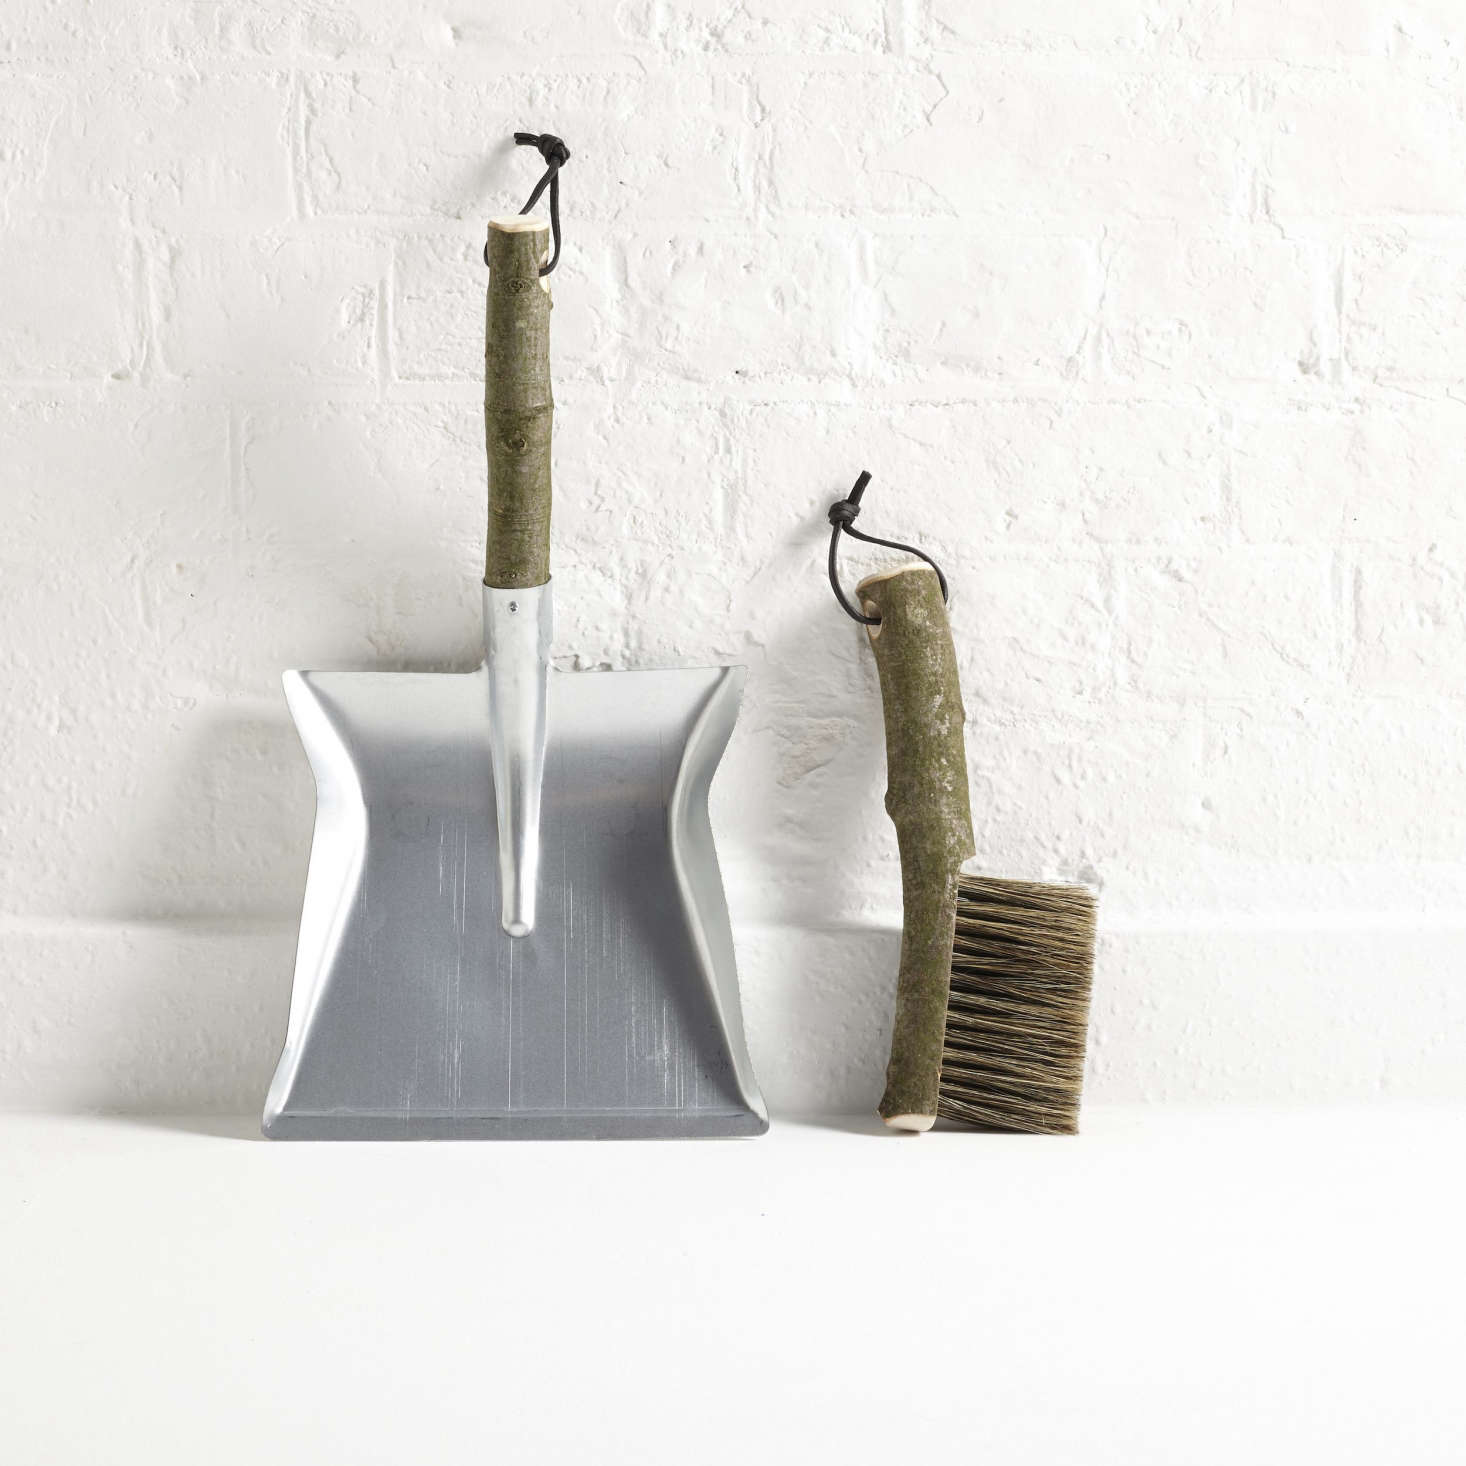 The handmade Geoffrey Fisher Dustpan and Brush is &#8